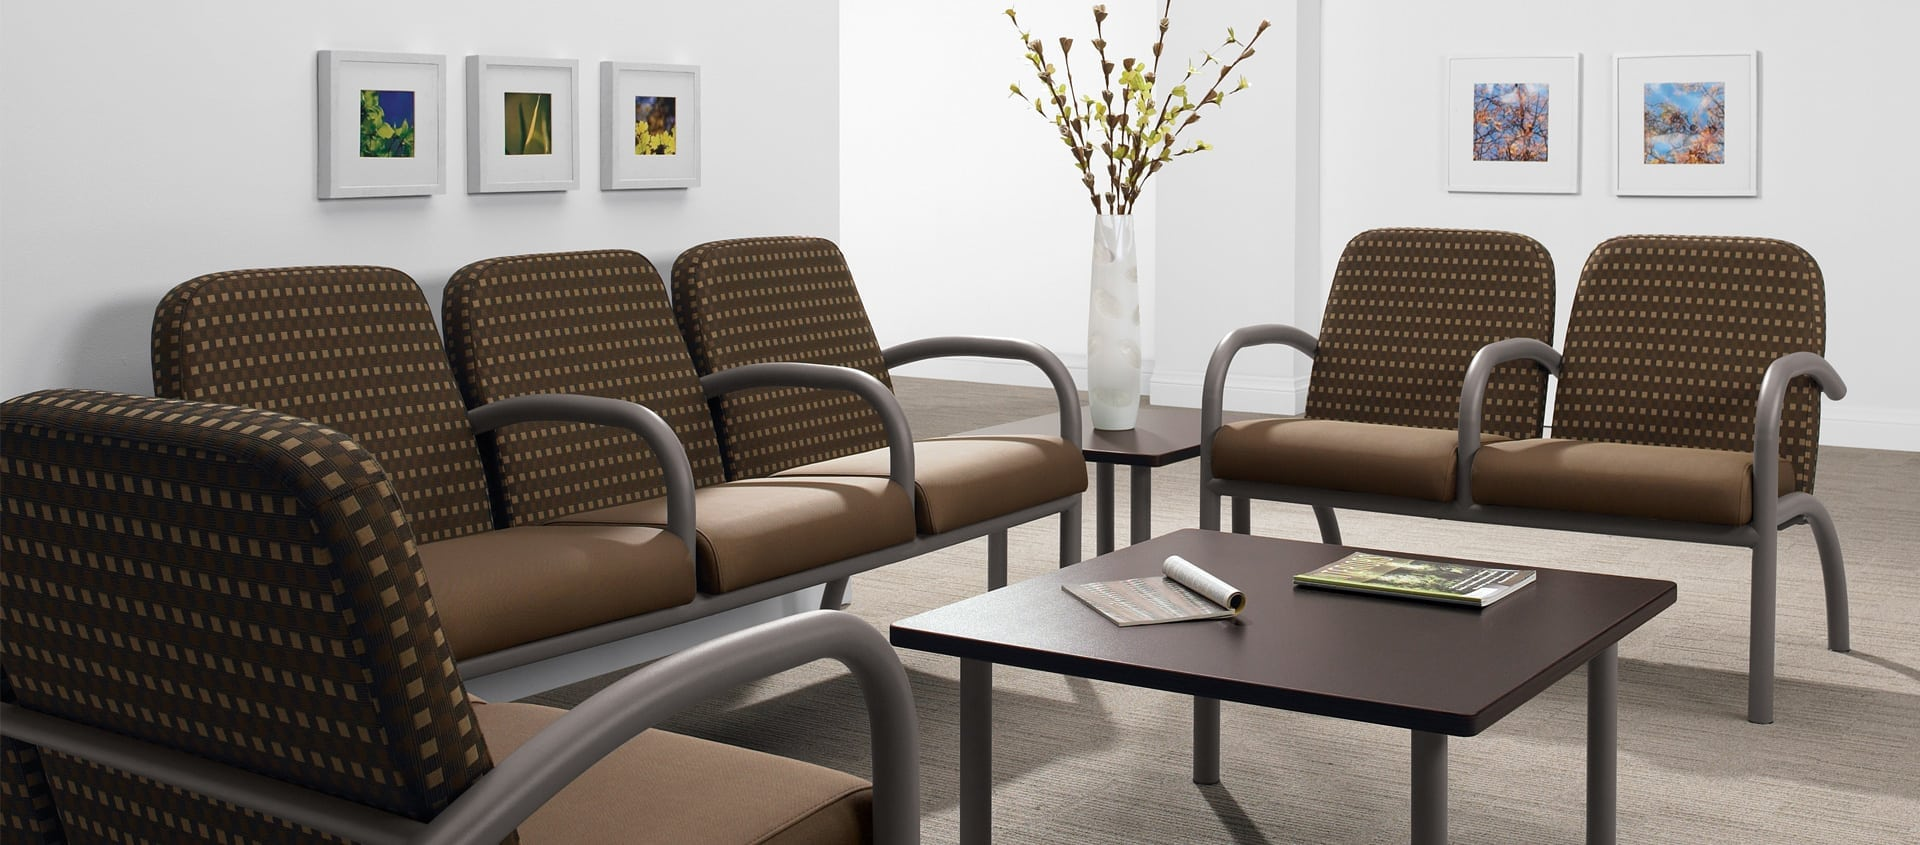 The Global Furniture Group's Aubra series delivers comfort and durability in the most demanding environments.